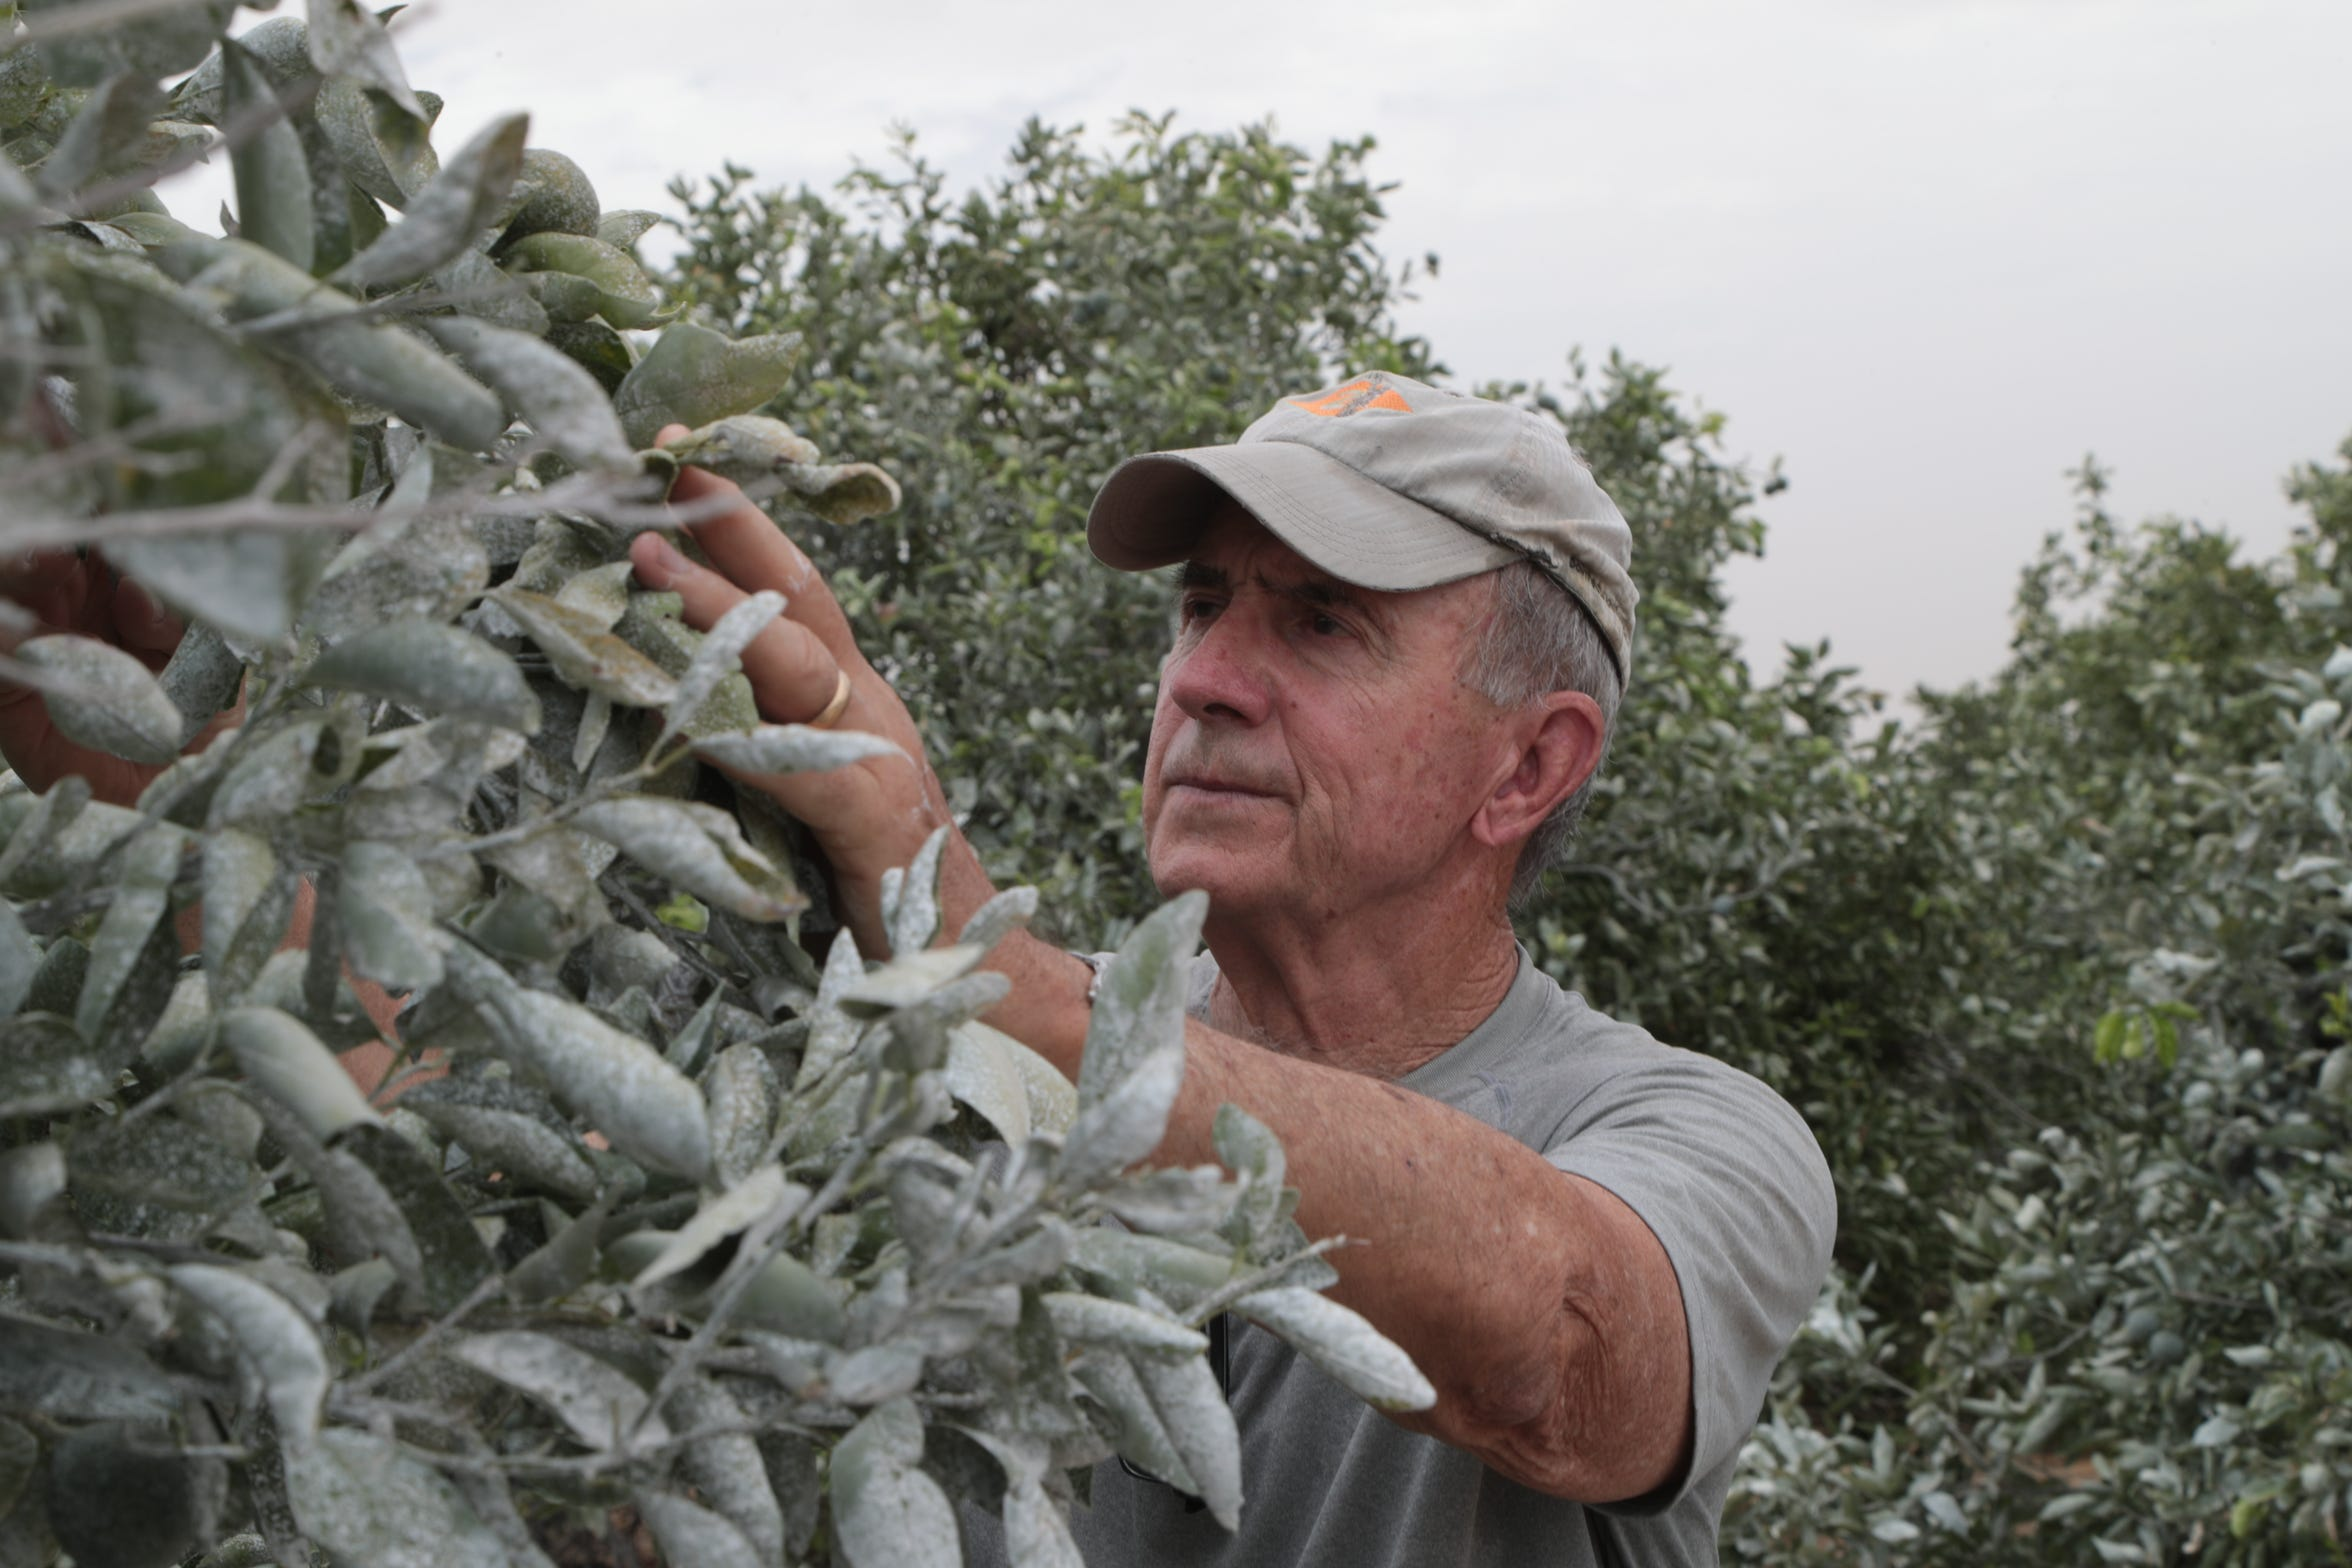 Jim Seley examines a citrus tree at his orchard in Borrego Springs.